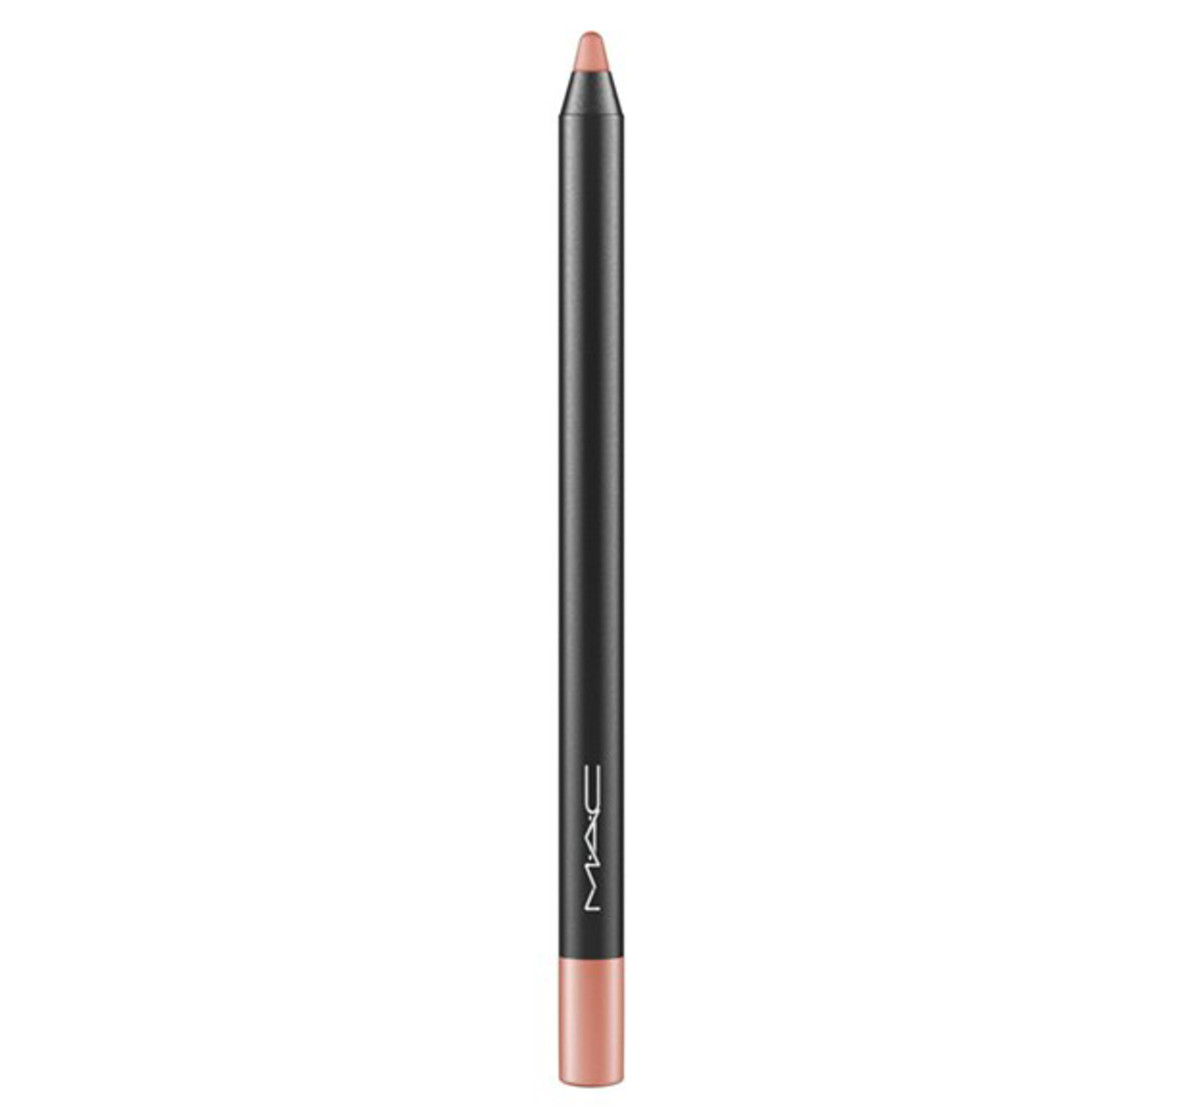 MAC Cosmetics Pro Longwear Lip Liner in Etcetera, $20, available at Nordstrom